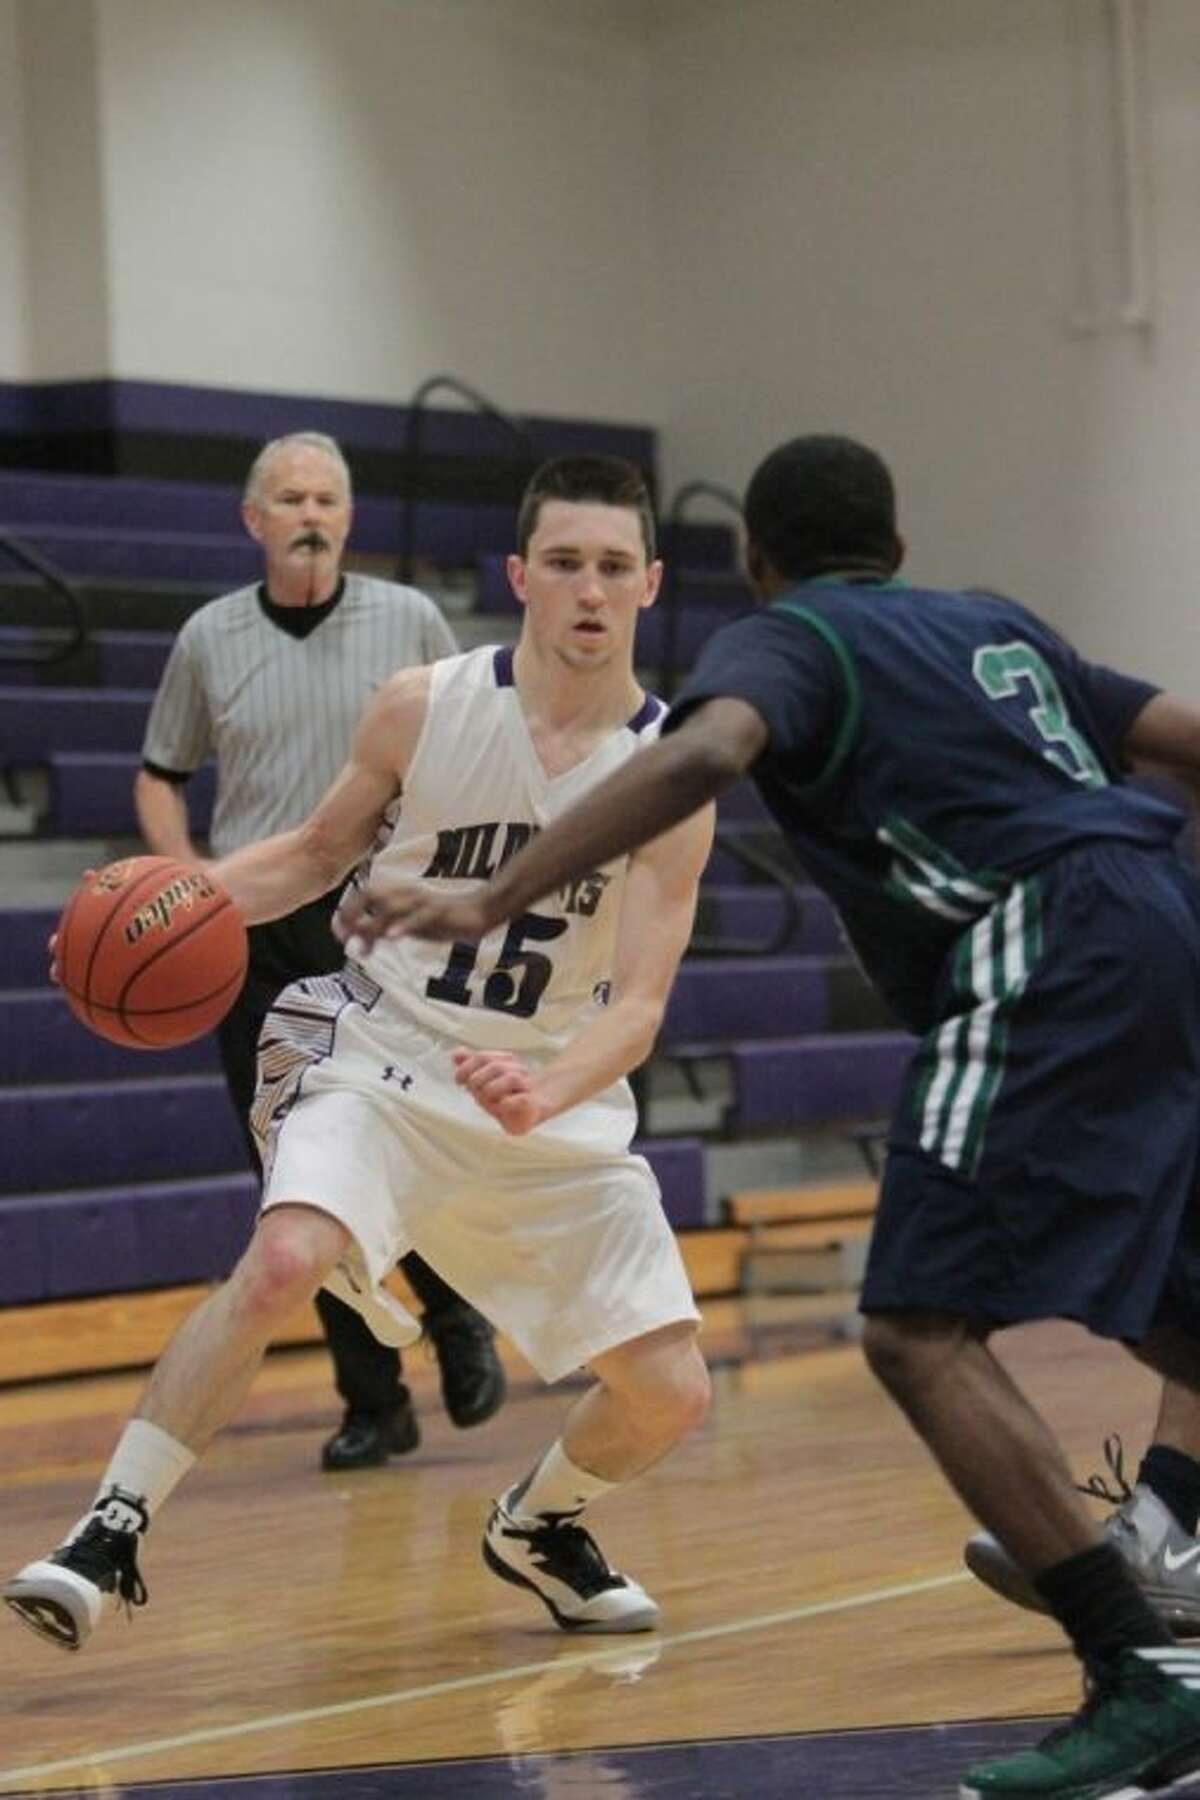 Payne Andrus and the Willis Wildkats host Montgomery at 7:30 p.m. Friday.